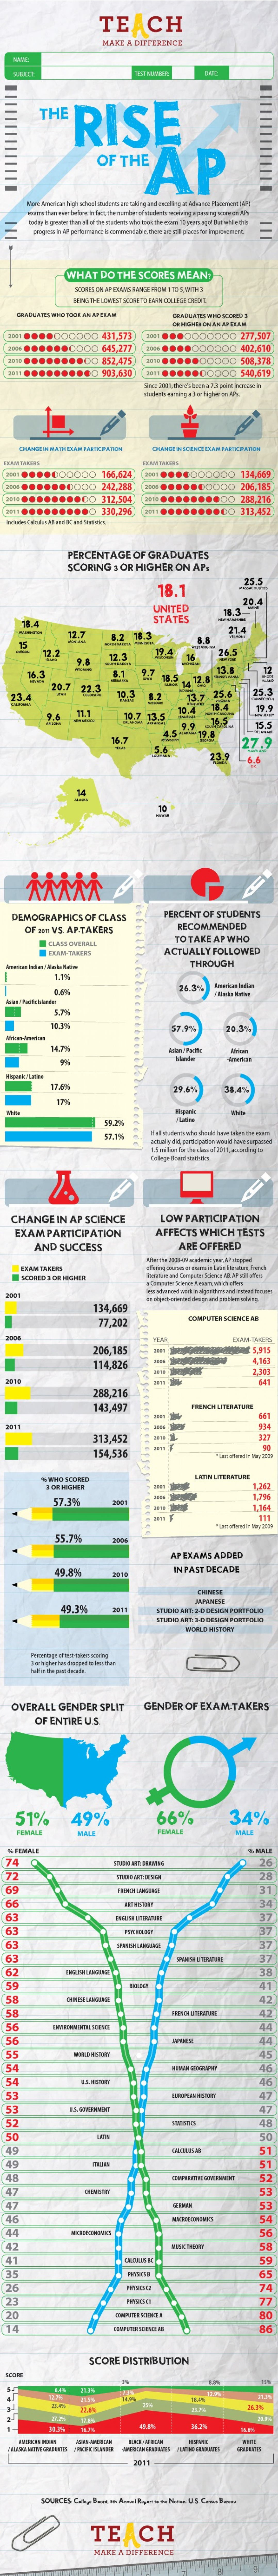 The Rise of the AP Infographic